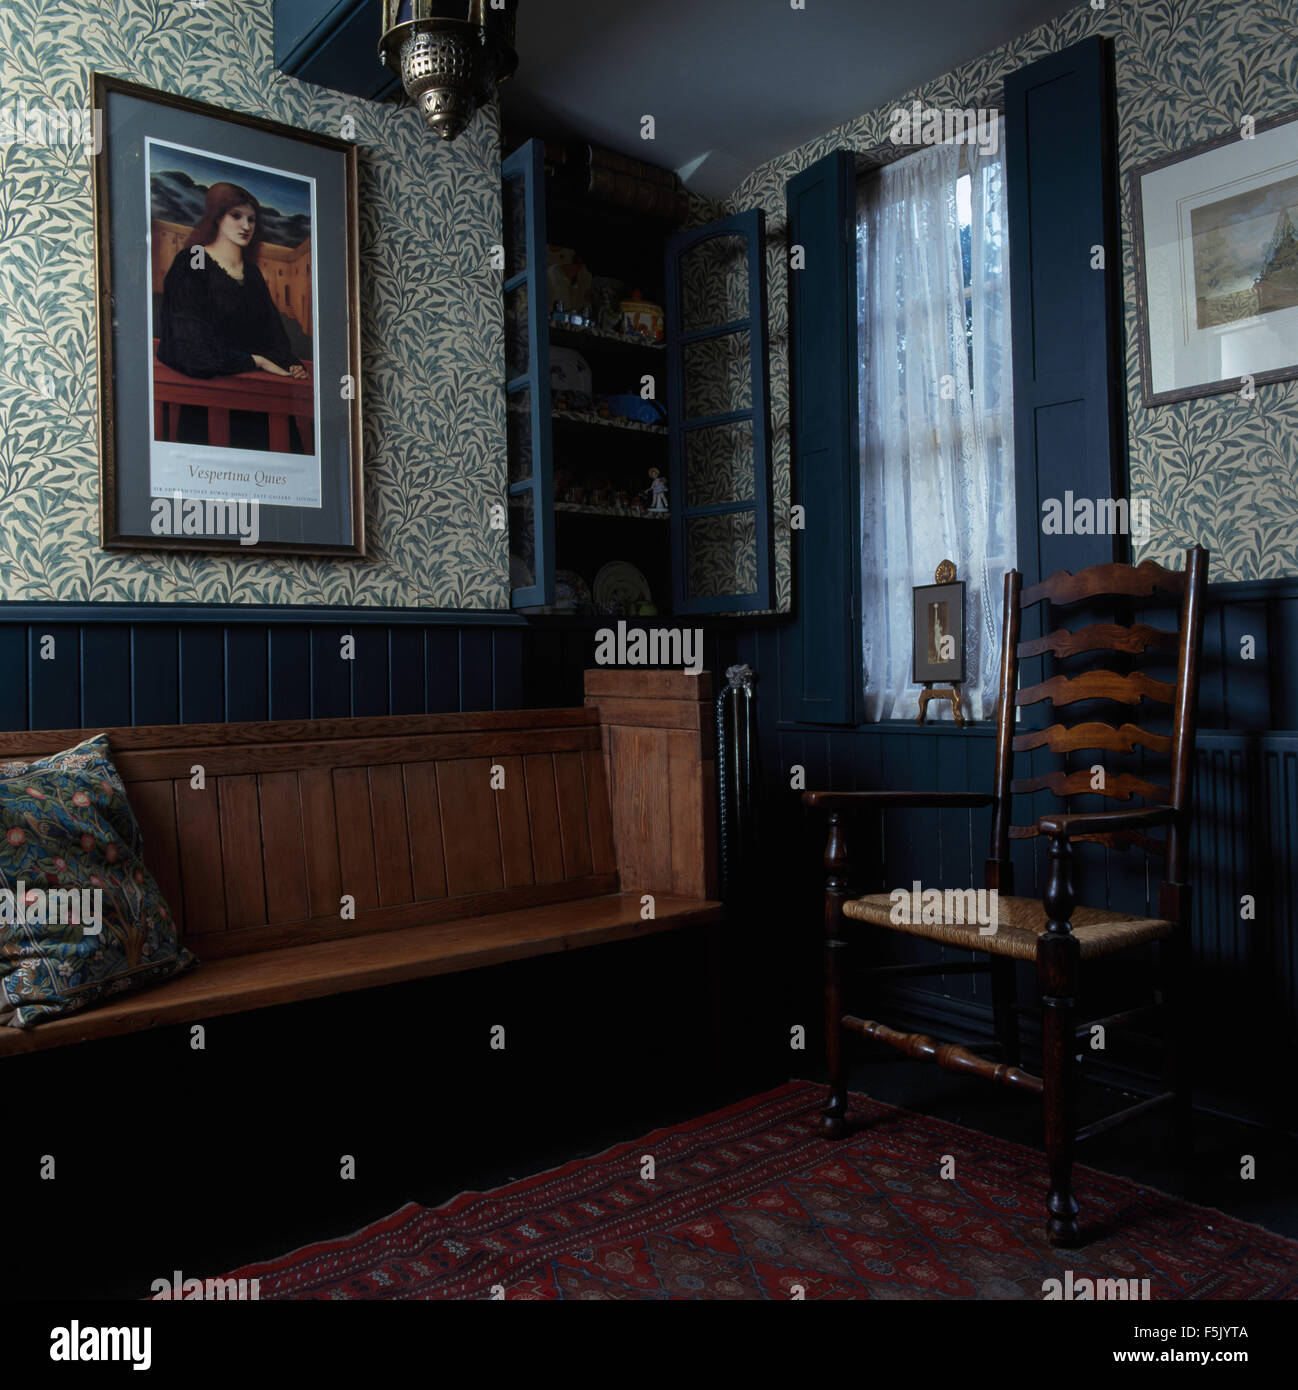 Wooden Settle And Ladder Back Chair In An Arts Crafts Style Room Stock Photo Alamy